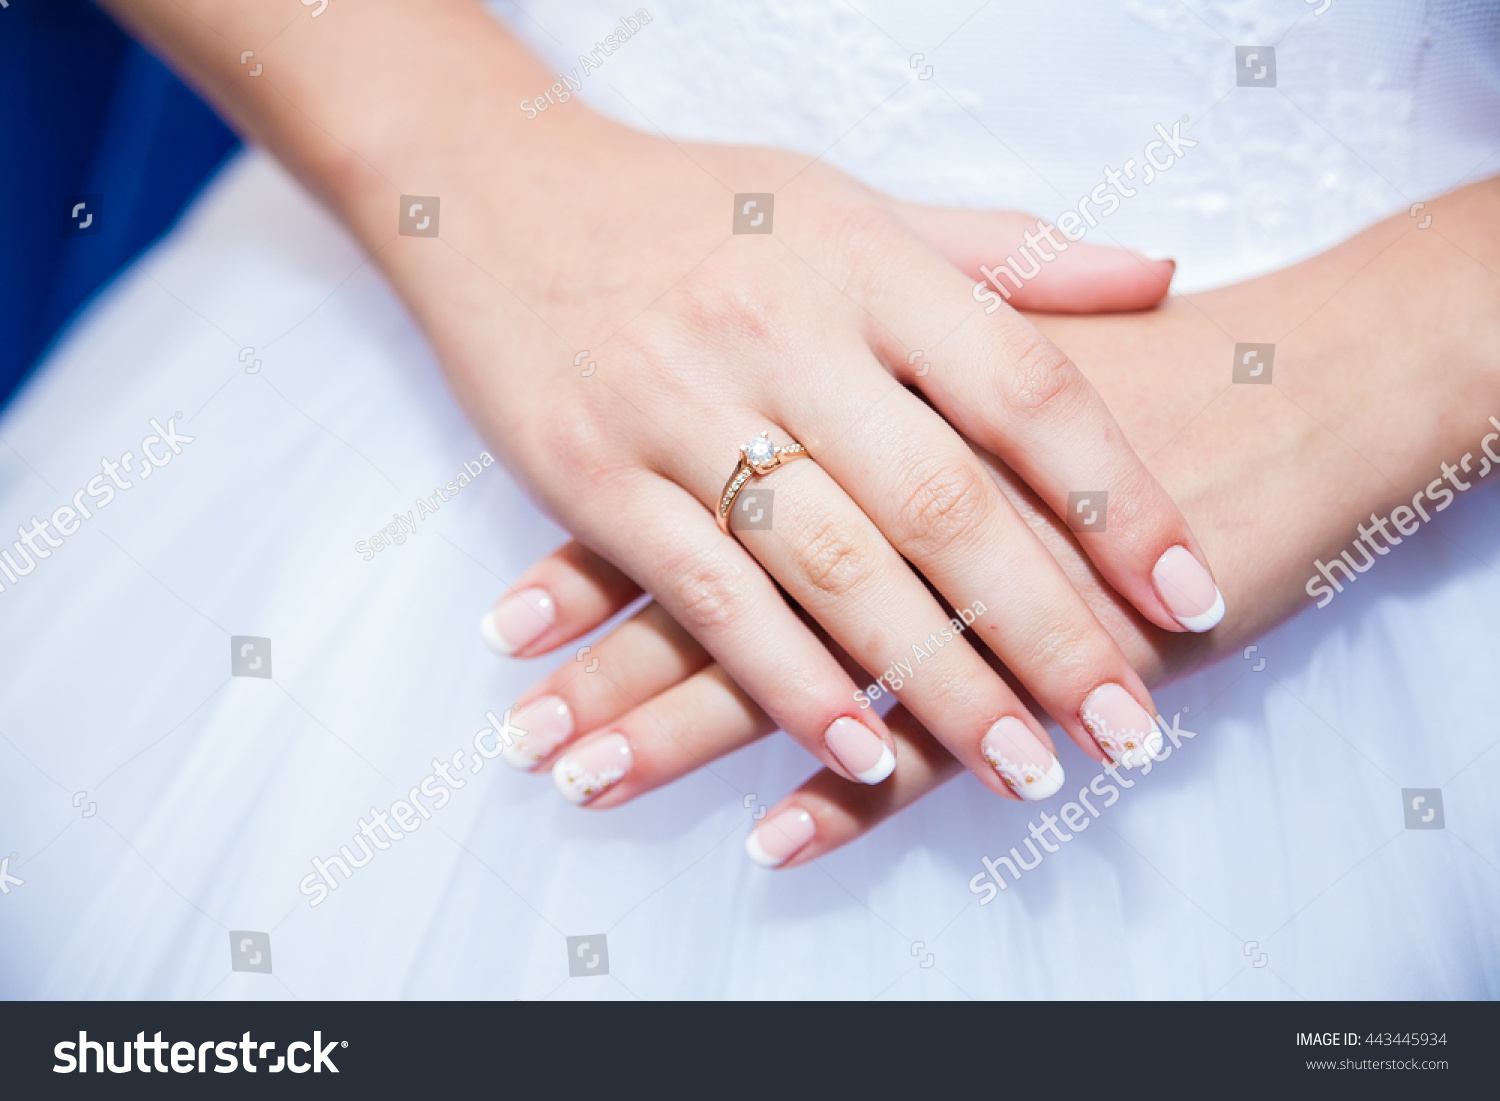 Brides Hands Wedding Rings Close Stock Photo 443445934 - Shutterstock